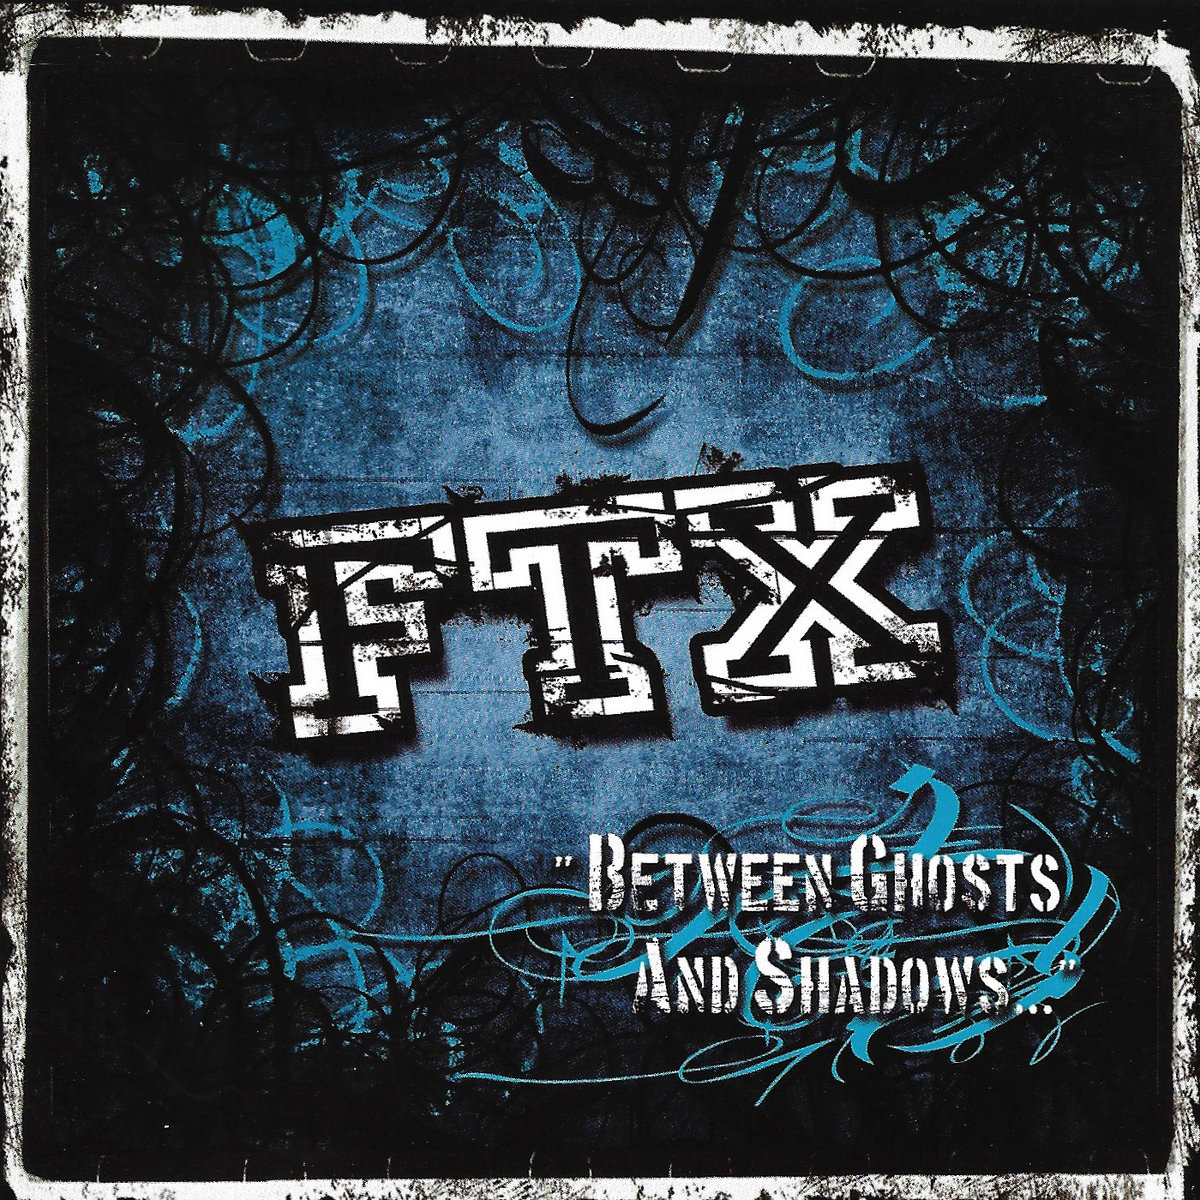 FTX Between ghosts and shadows | Eternalis Records